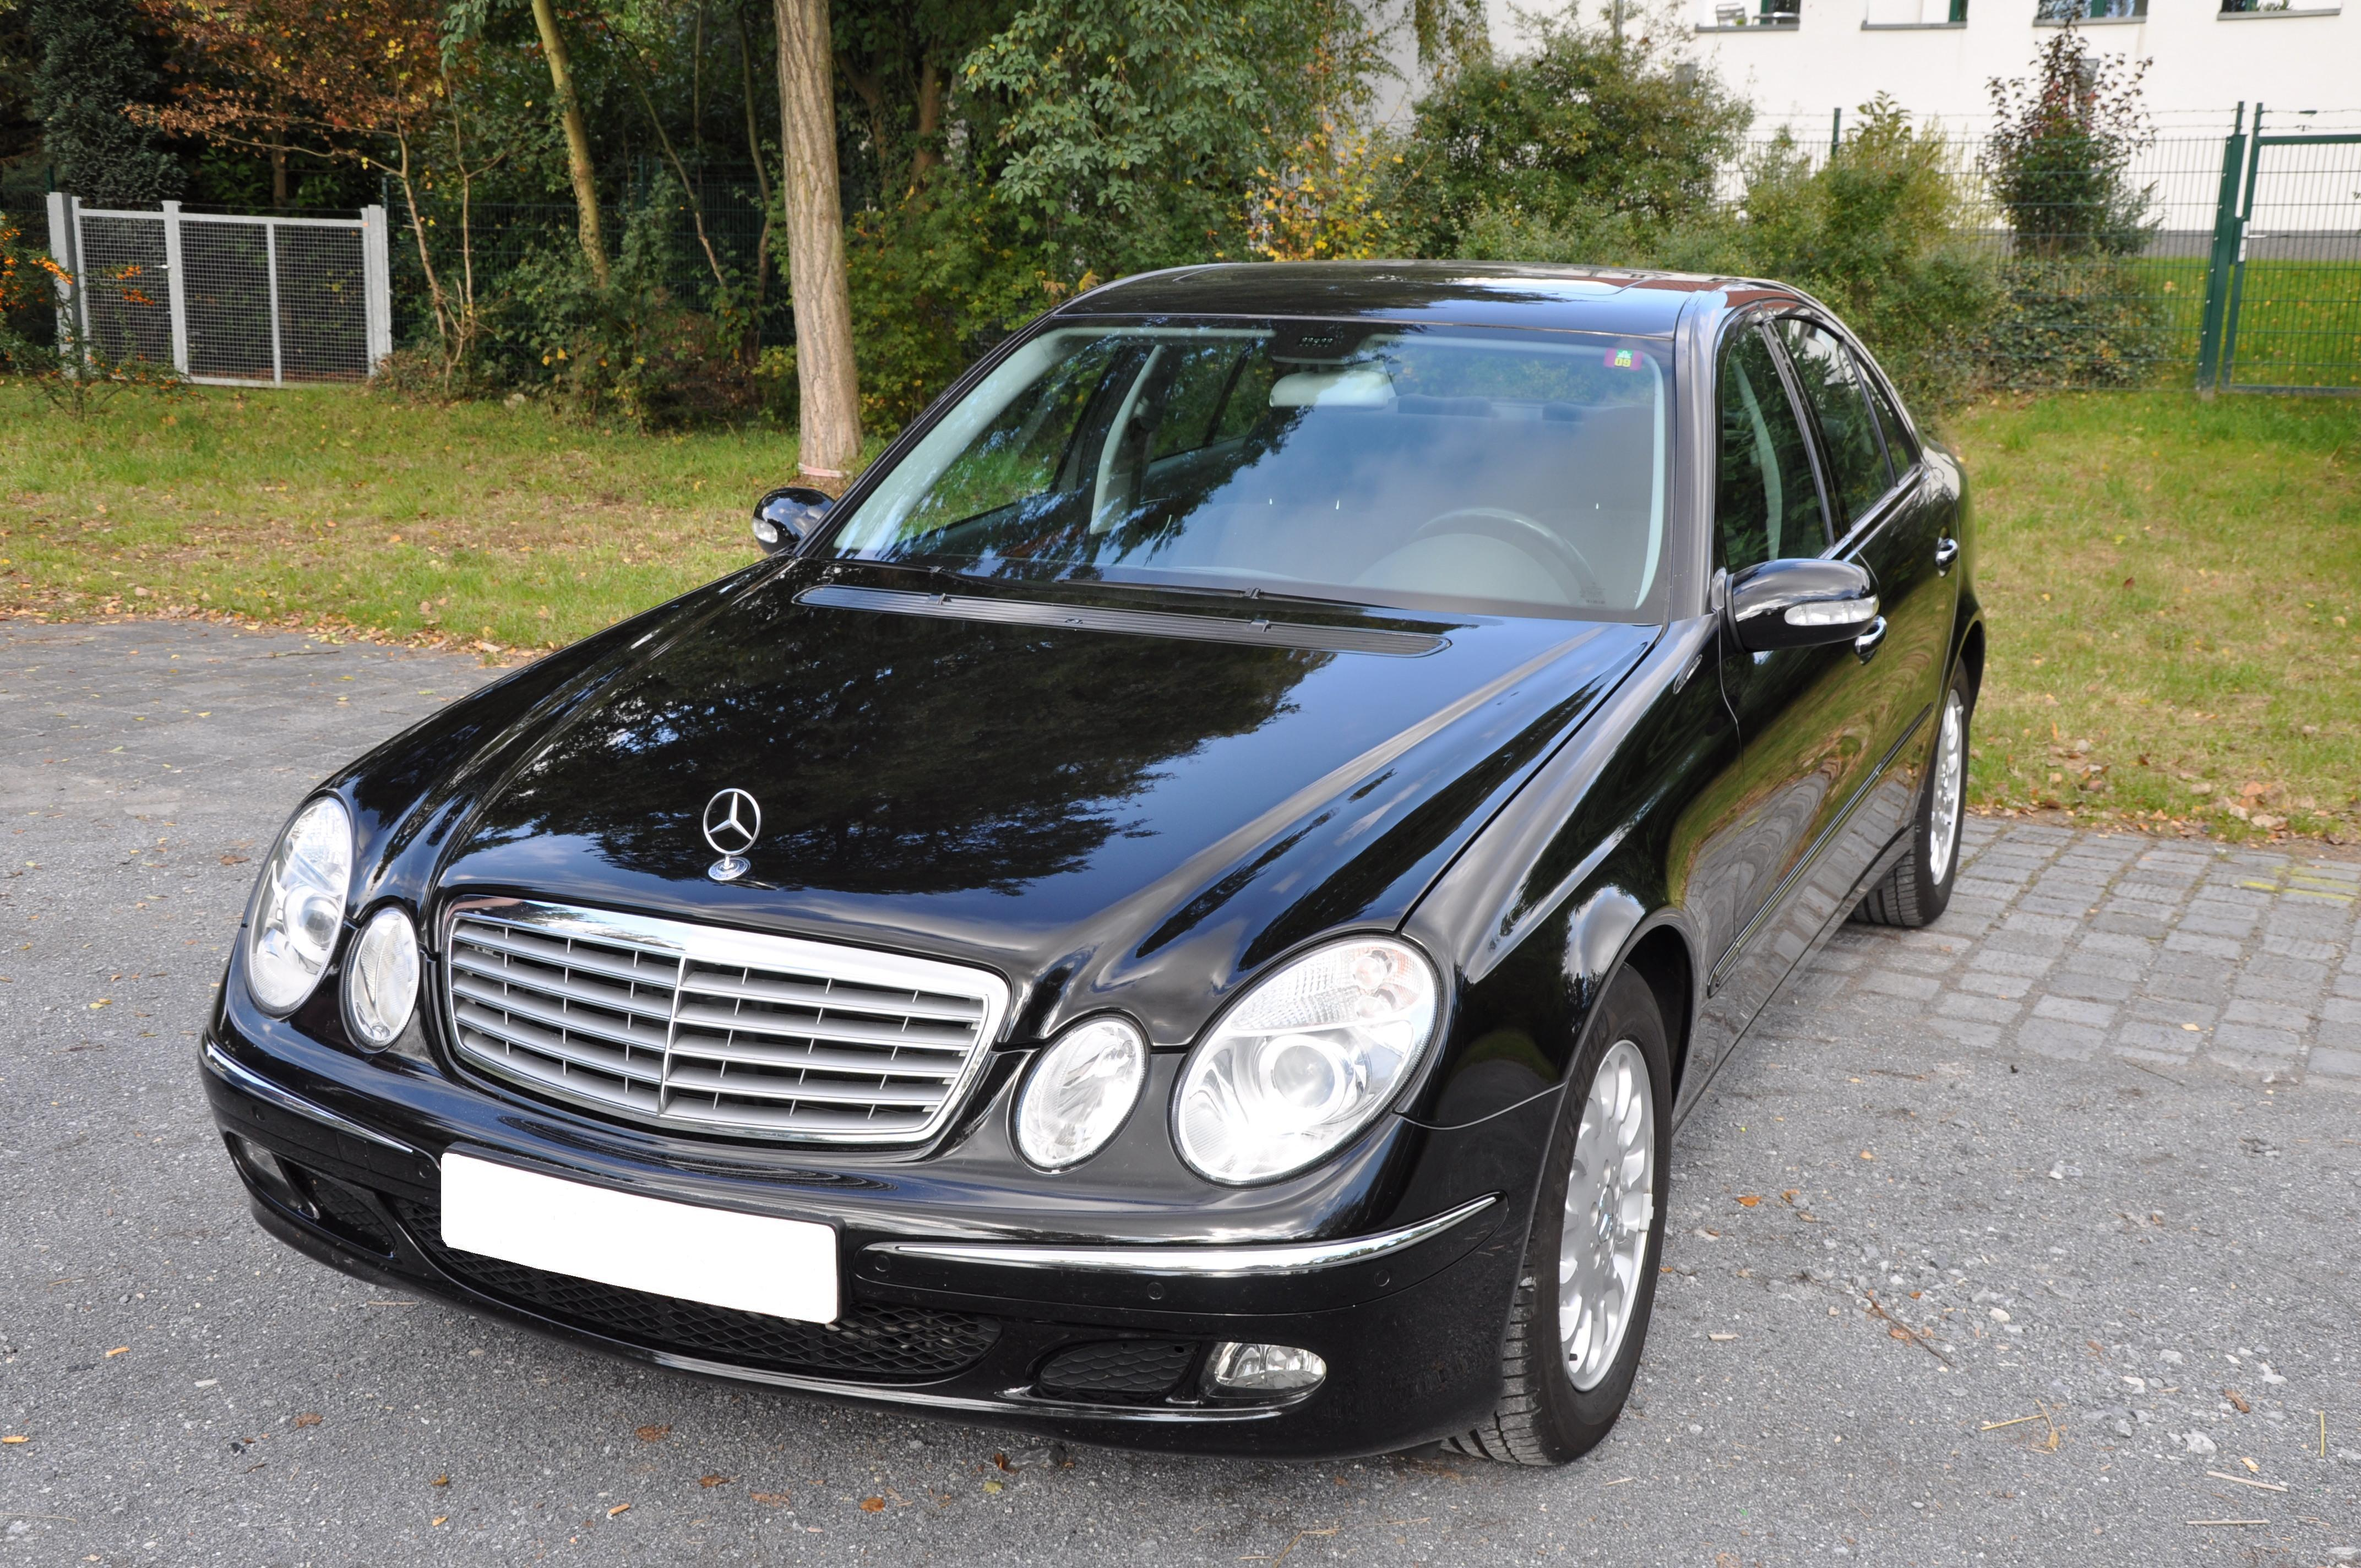 mercedes benz e 240 elegance photos reviews news specs buy car. Black Bedroom Furniture Sets. Home Design Ideas